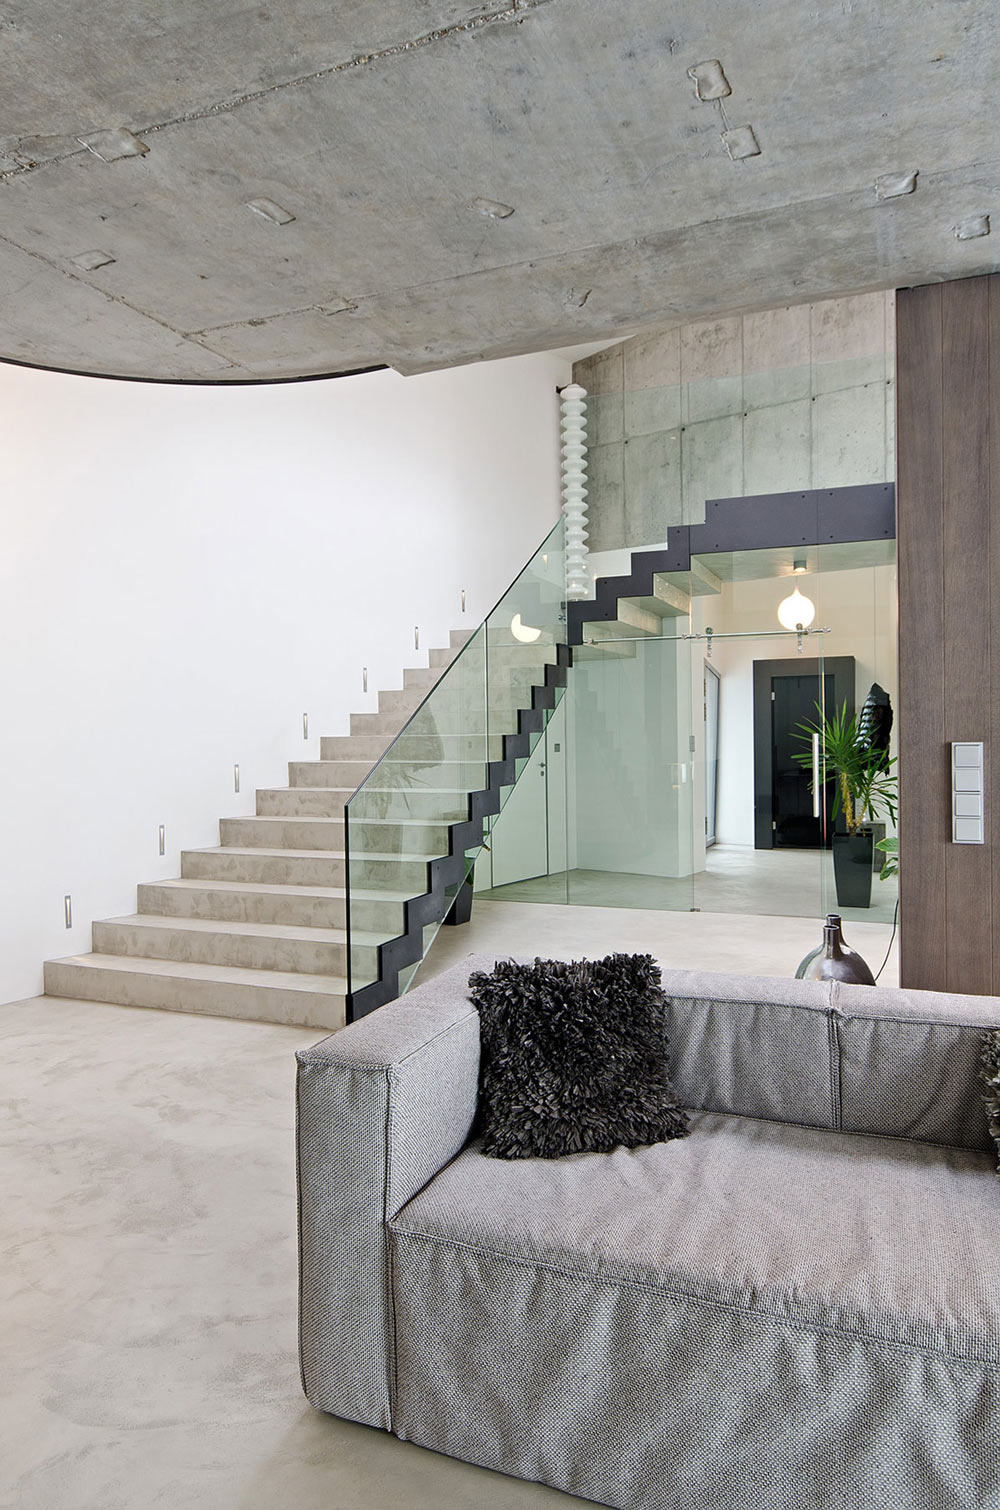 Stairs, Concrete Interior Design in Osice, Czech Republic